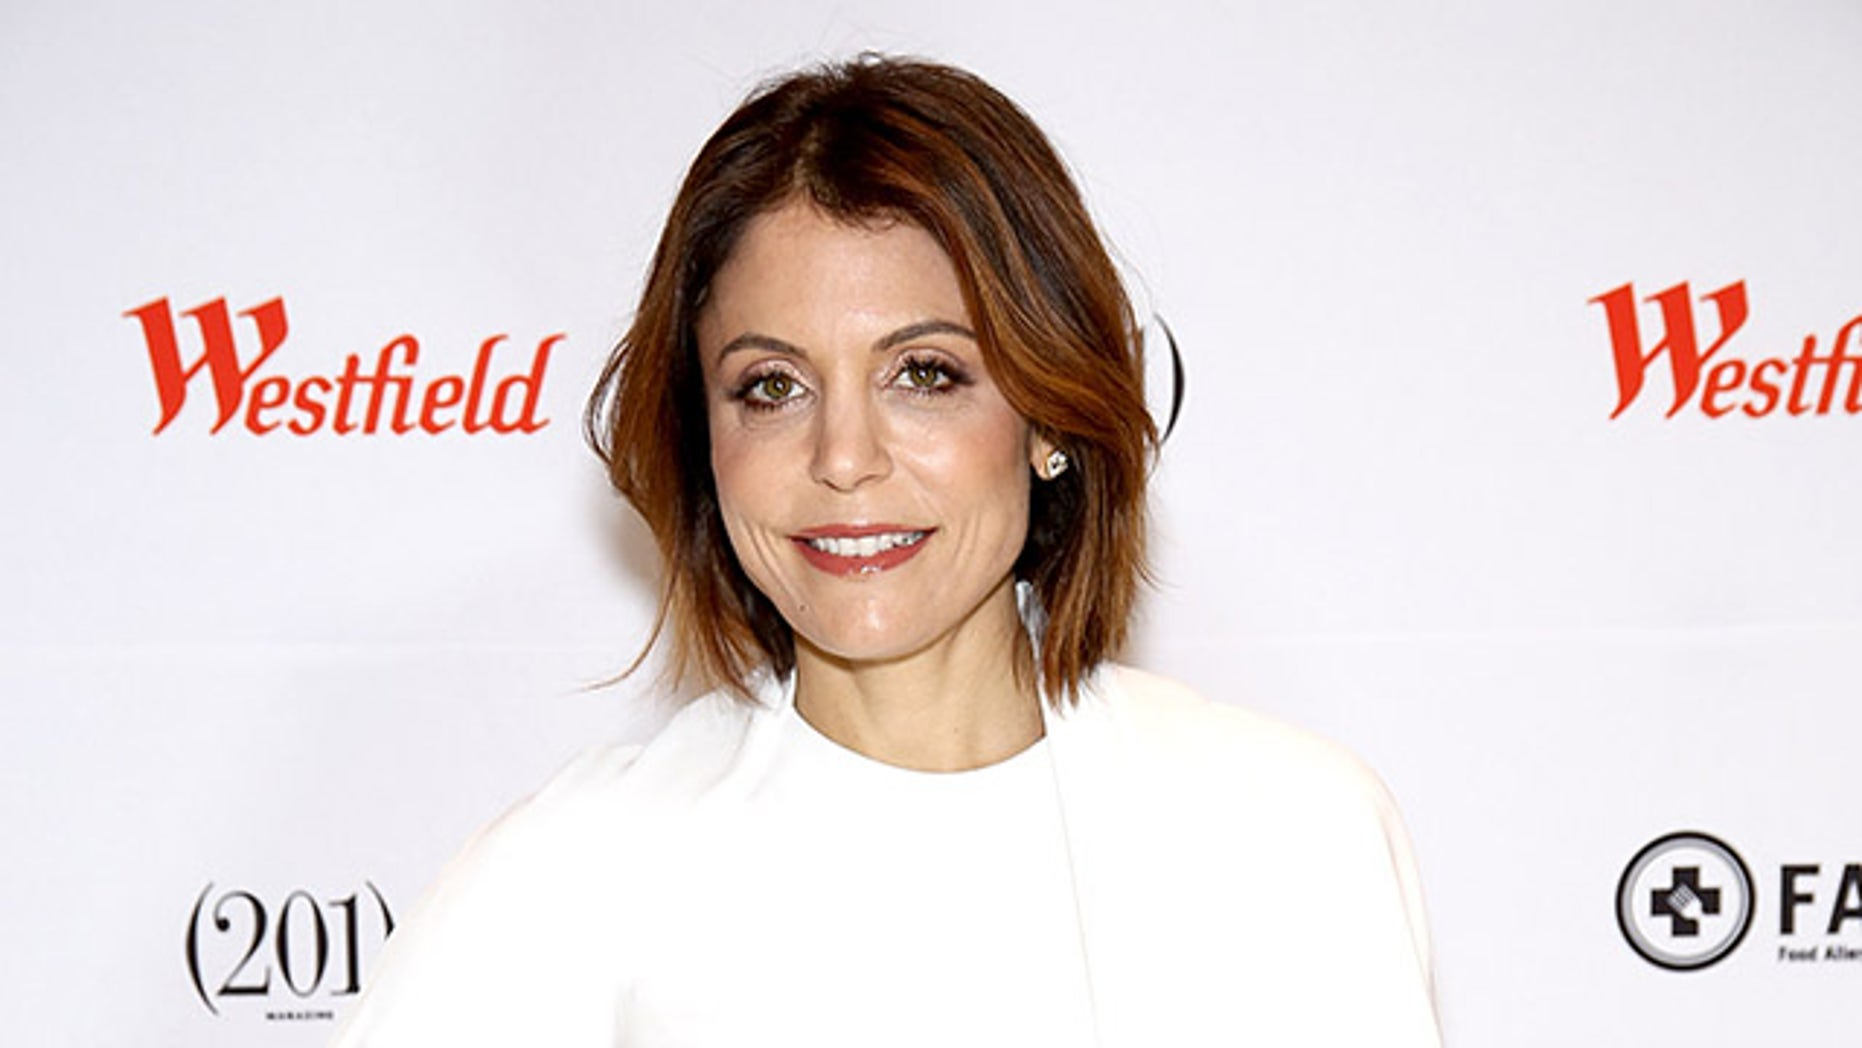 December 3, 2015.  Bethenny Frankel attends Cocktails & Couture At Westfield Garden State Plaza in New Jersey.